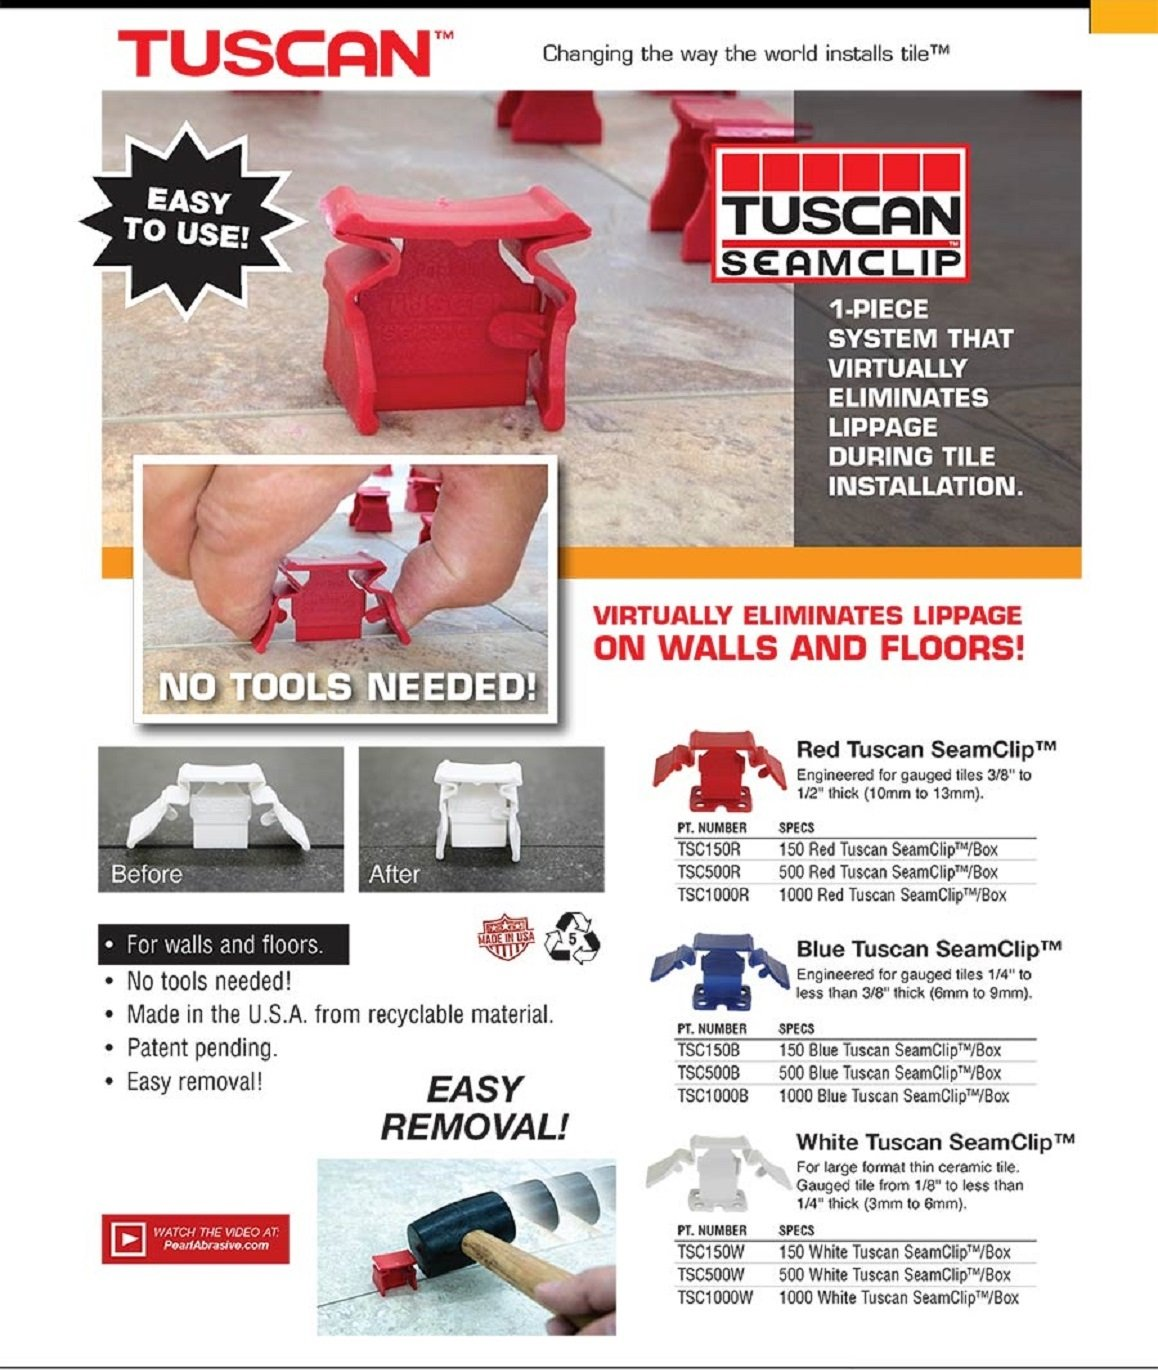 Tuscan Seamclip Red 500 pc Box #TSC500R For Tile 3/8'' but less than 1/2'' thick